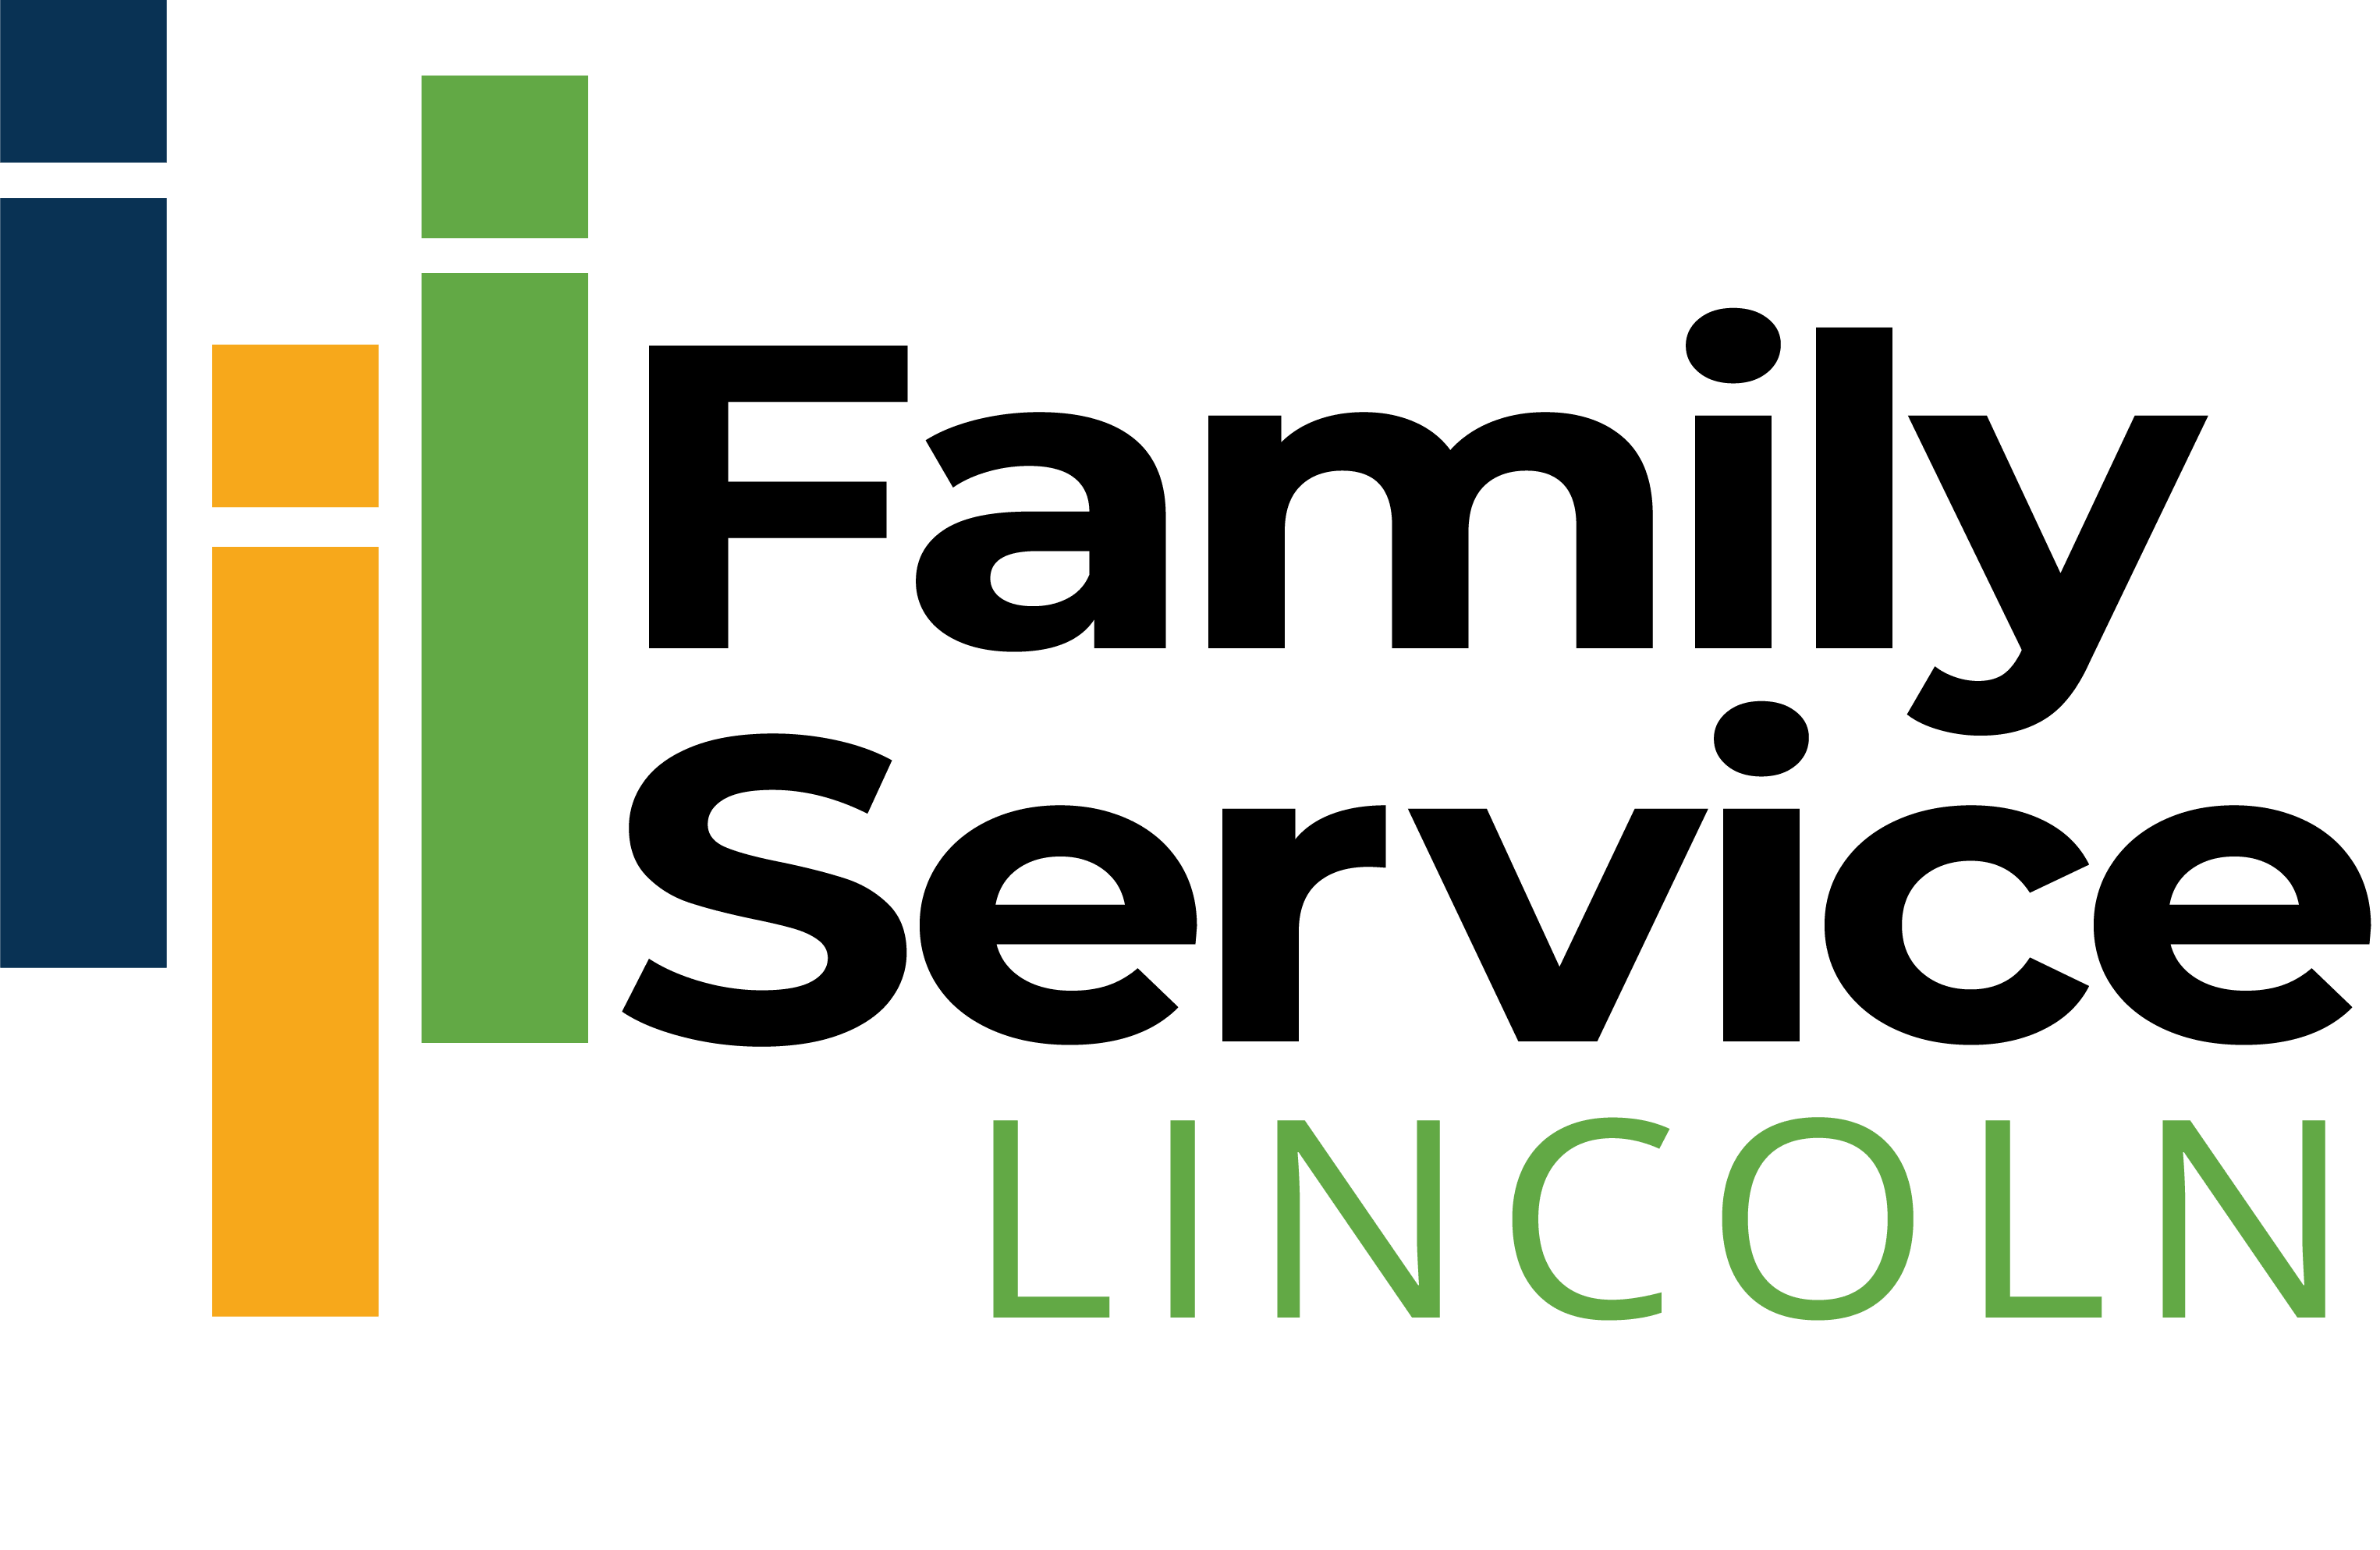 Family Services Png - Home   Family Service Lincoln